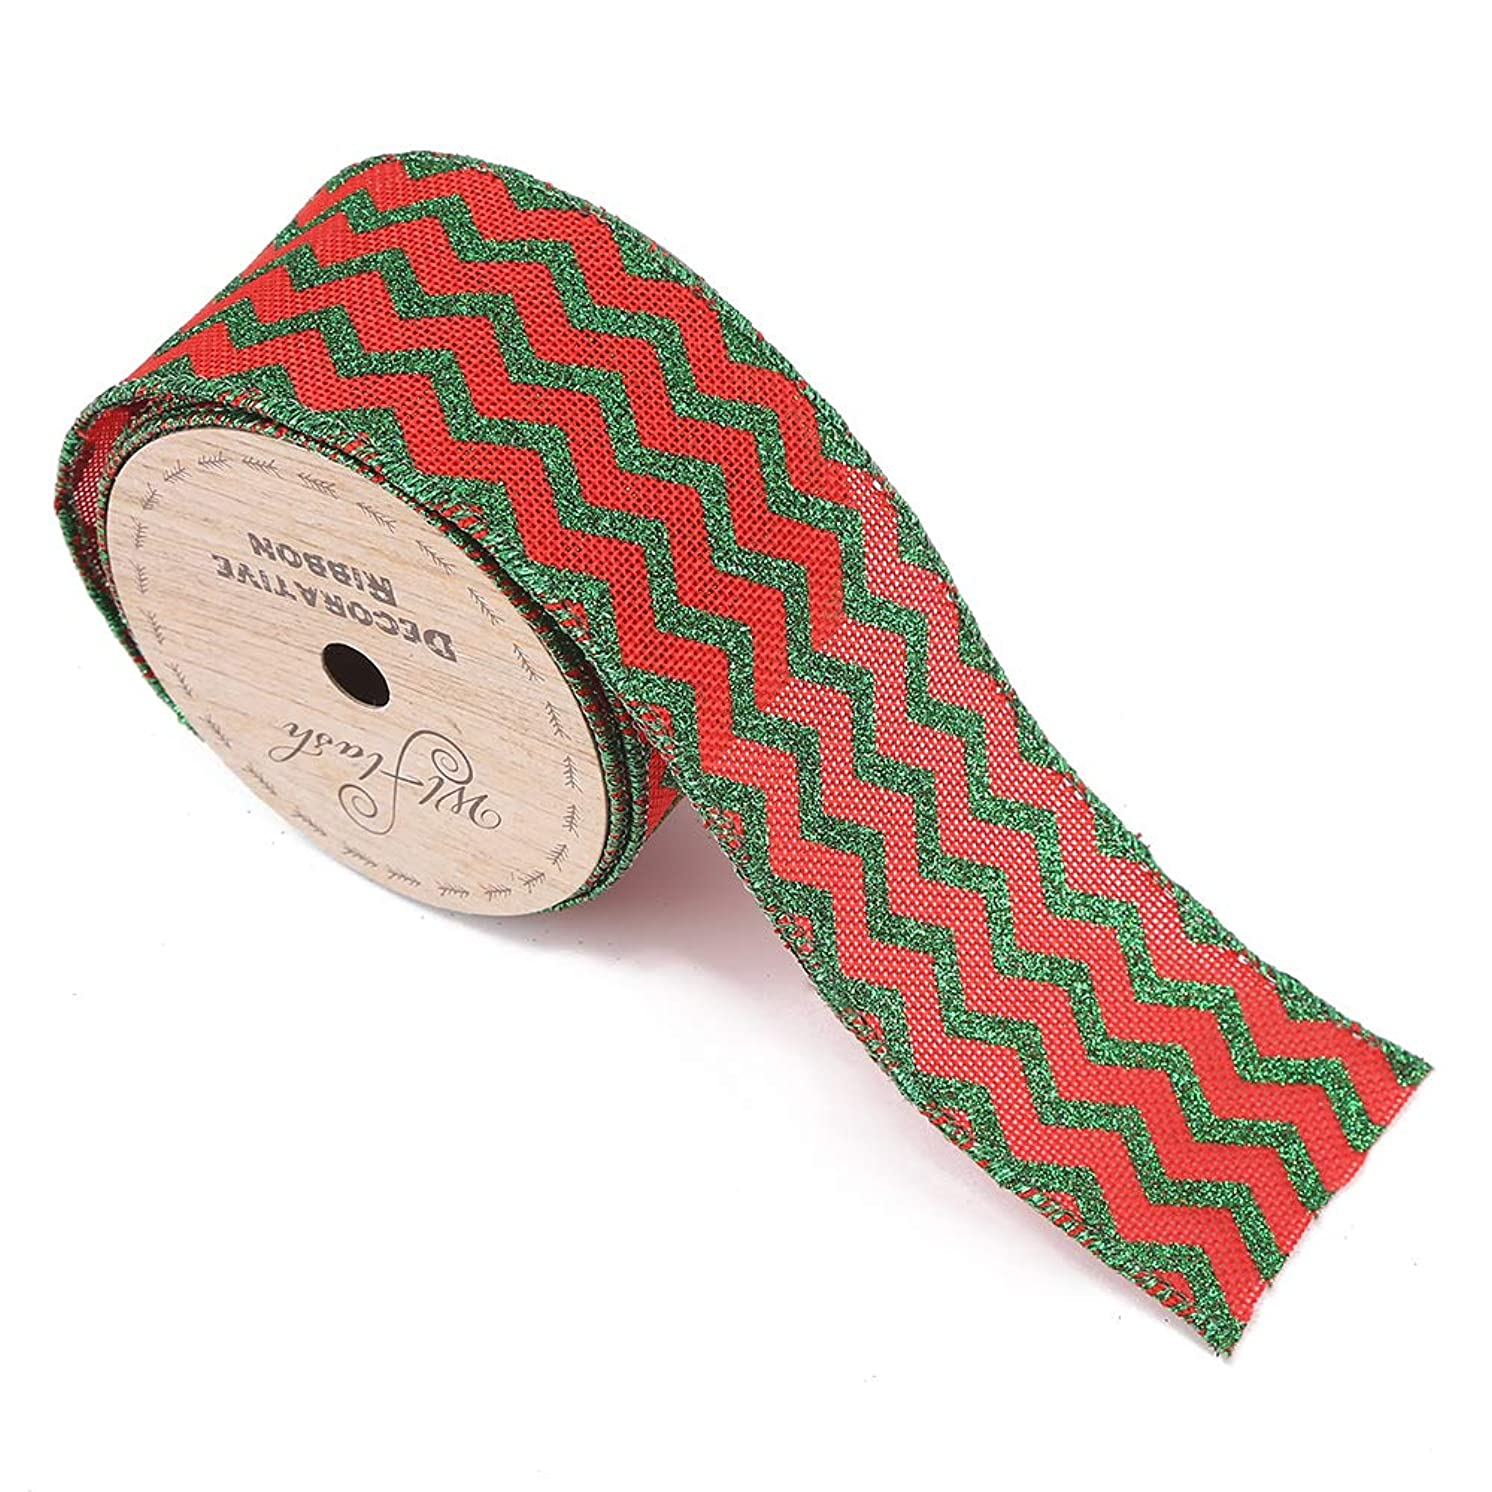 Wired Edge Craft Ribbon 2-1/2-Inch Wide by 10 Yard Spool Christmas Decorative Gift and Tree Wired Ribbon (Red Green Satin)